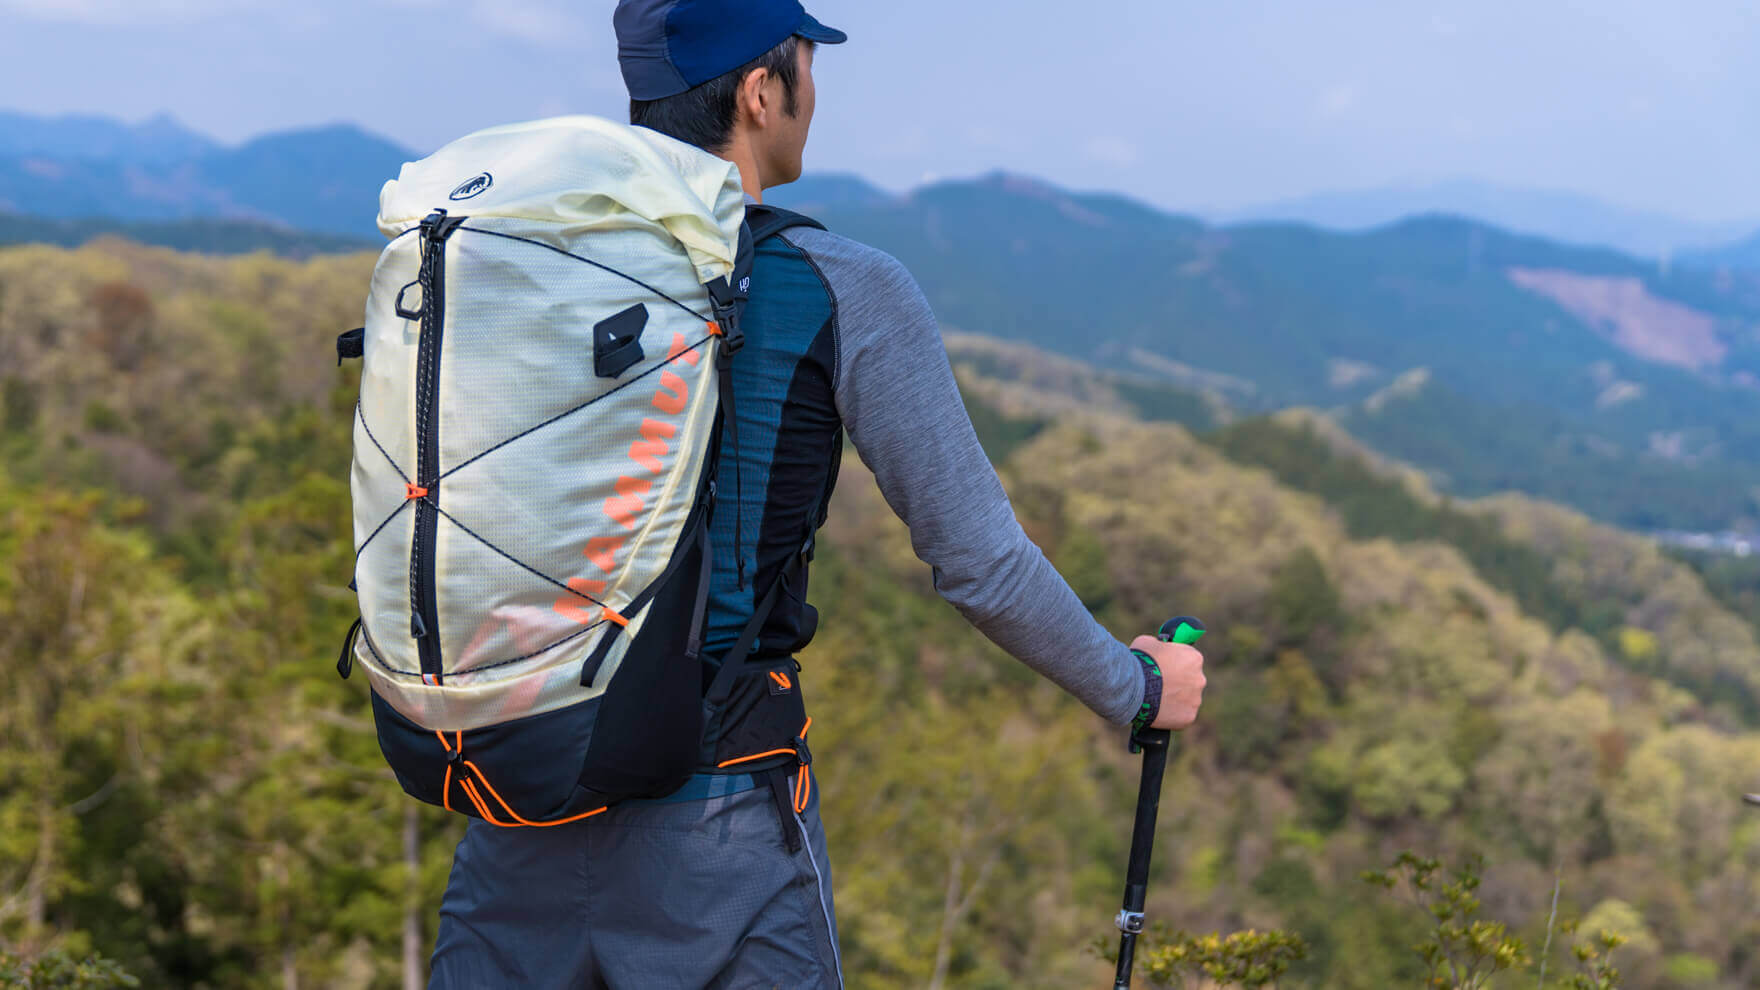 Review:MAMMUT Ducan Spine 28-35 ブレなし、ムレなし、如才なし。ファストパッキングが安心して楽しめるバックパック